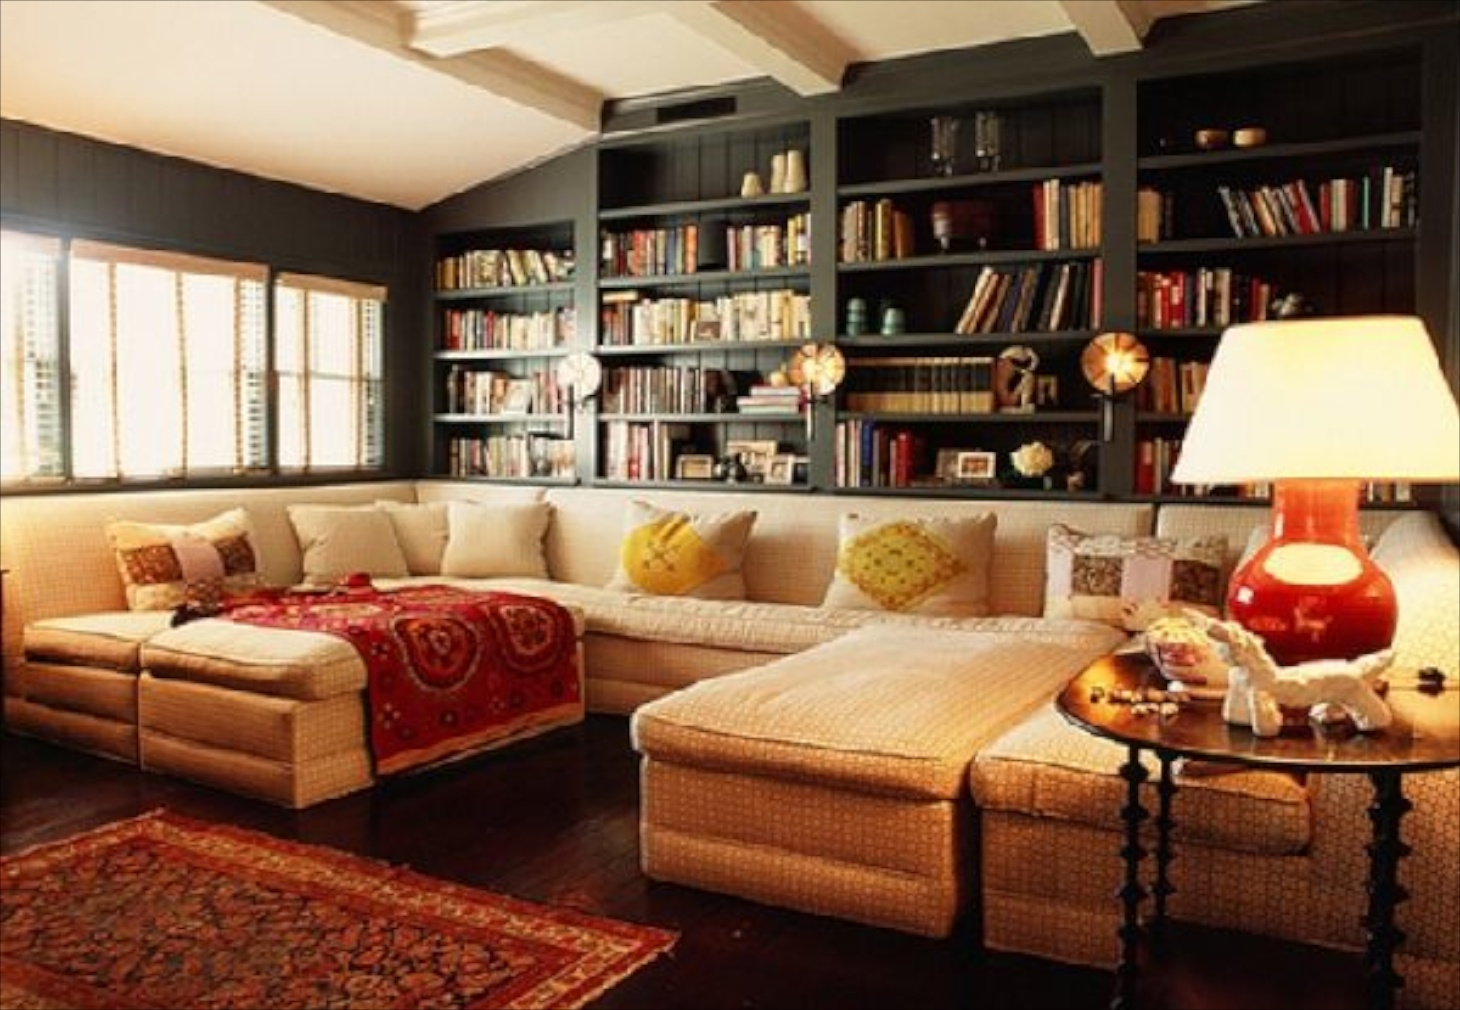 23 sofas and bookcase ideas in cozy living room design for Lounge for living room